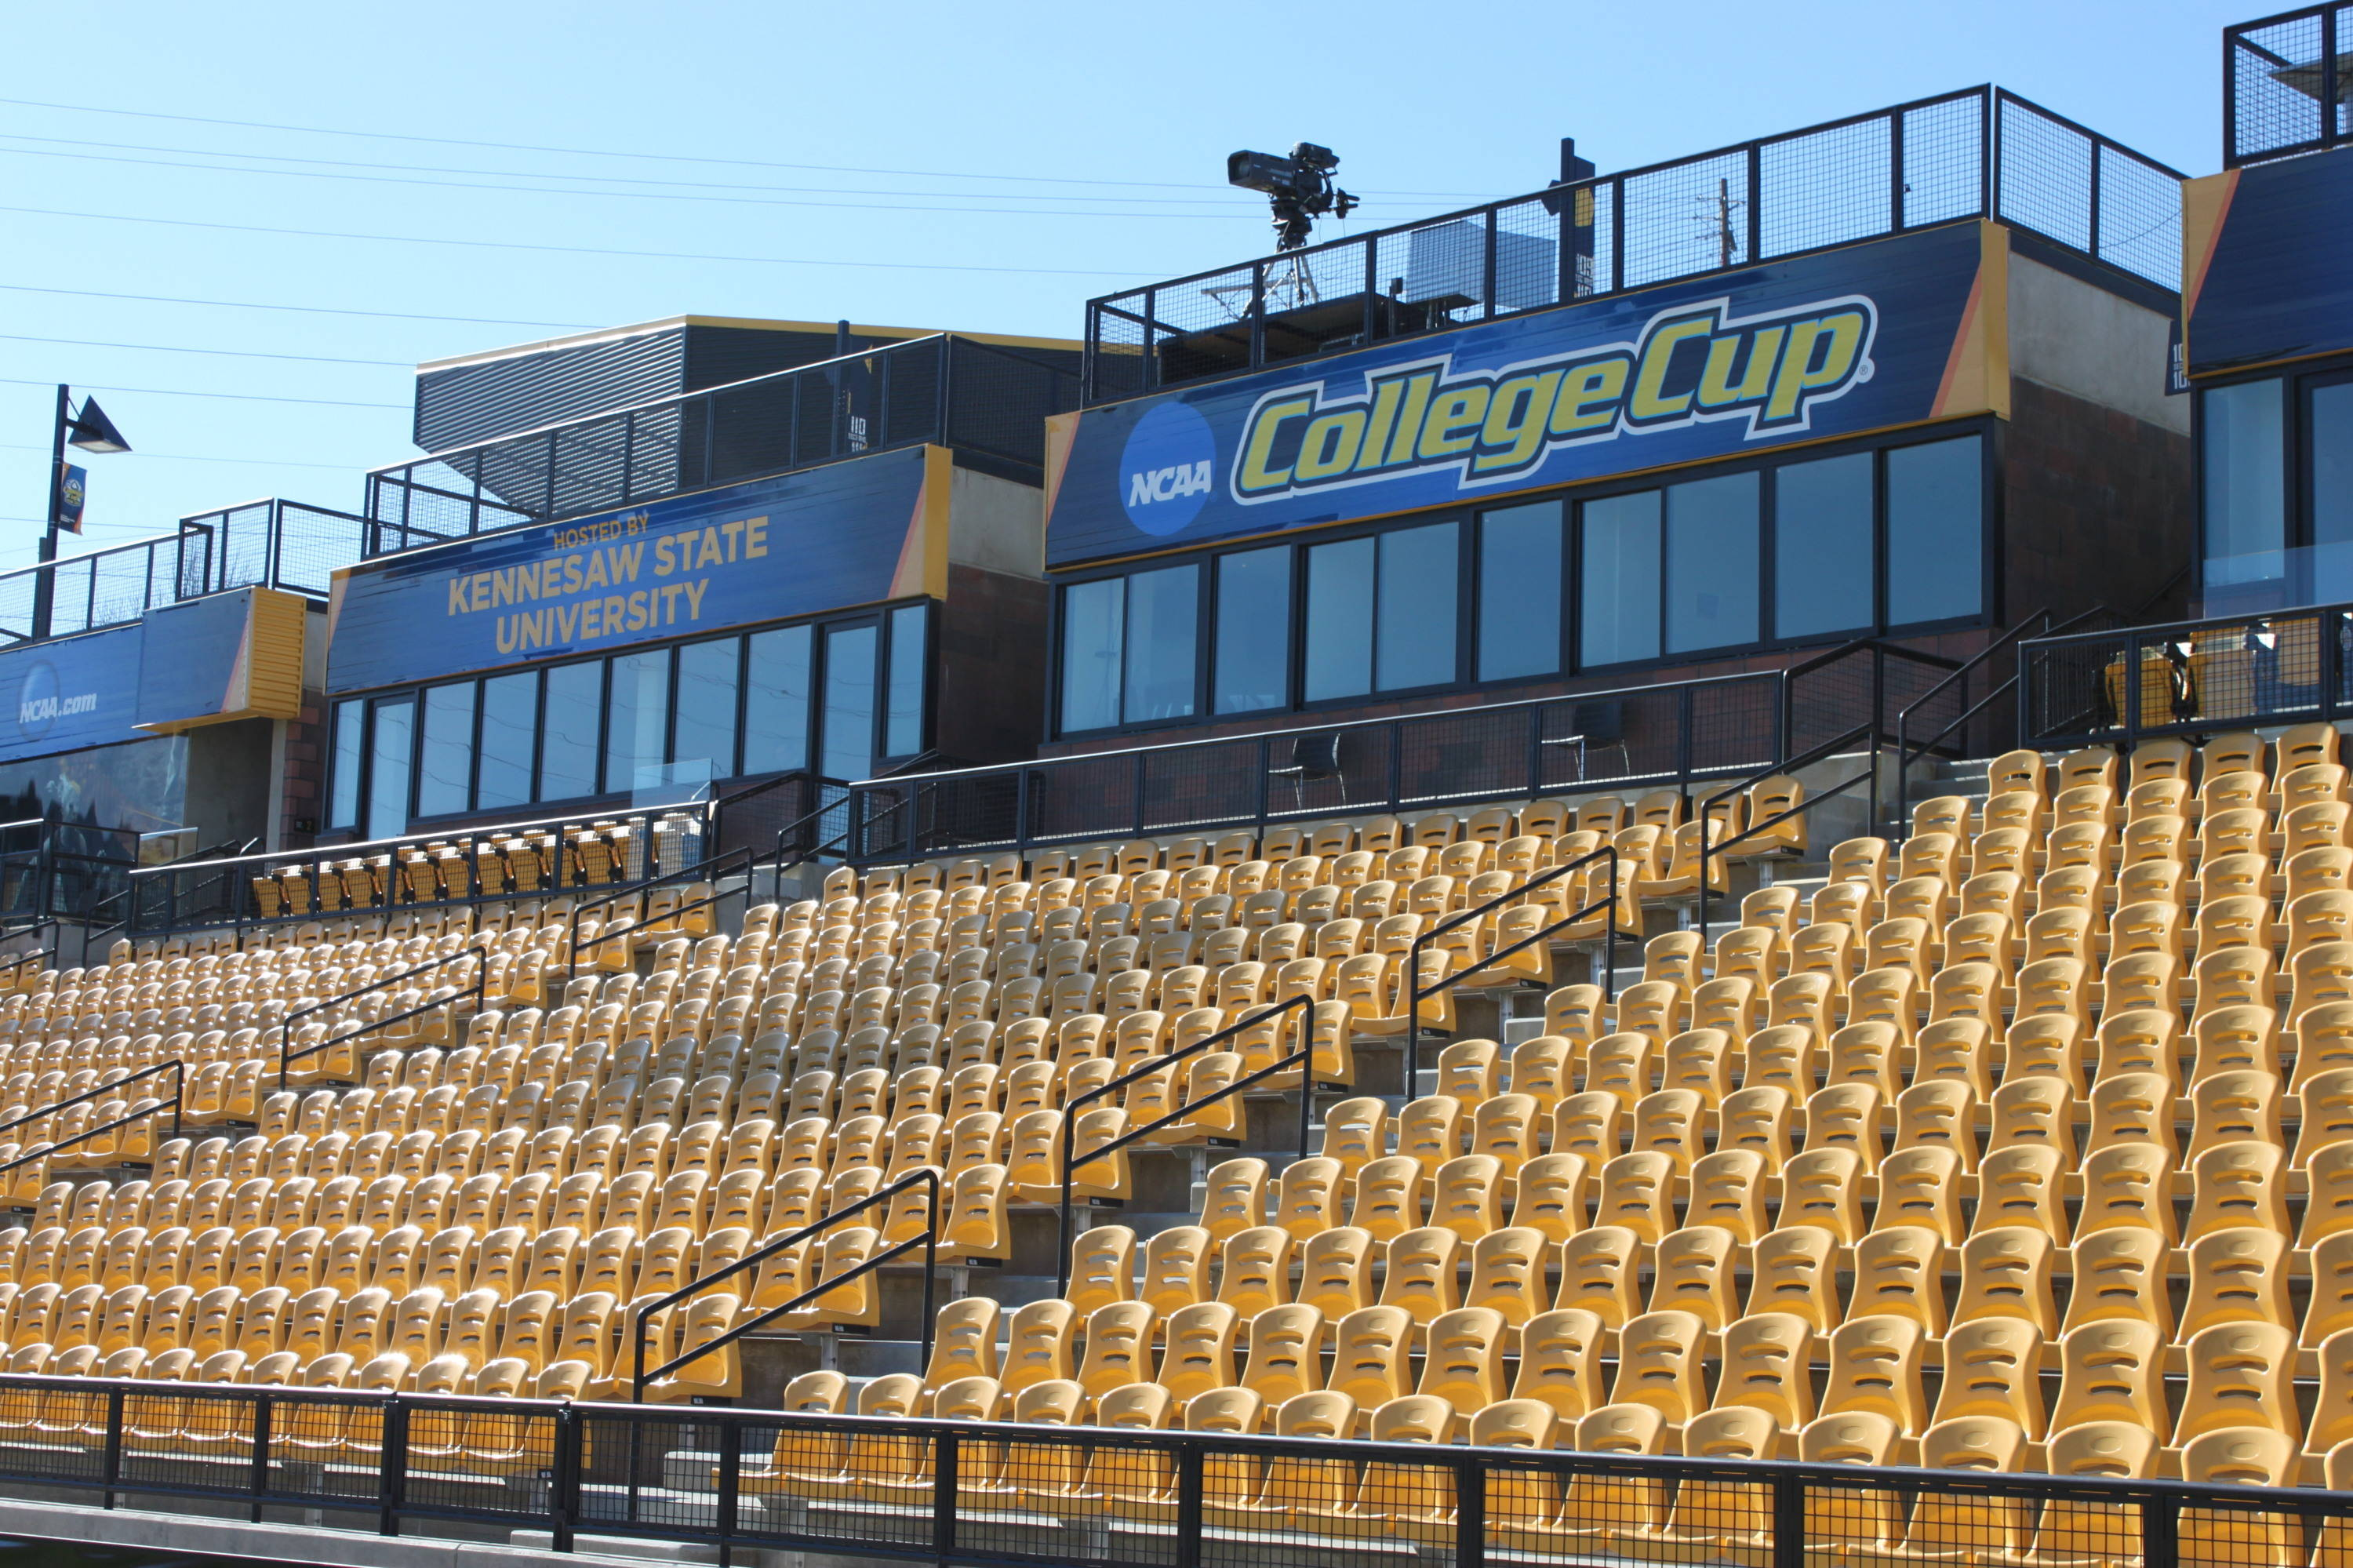 Another angle of the stands and the College Cup logos.